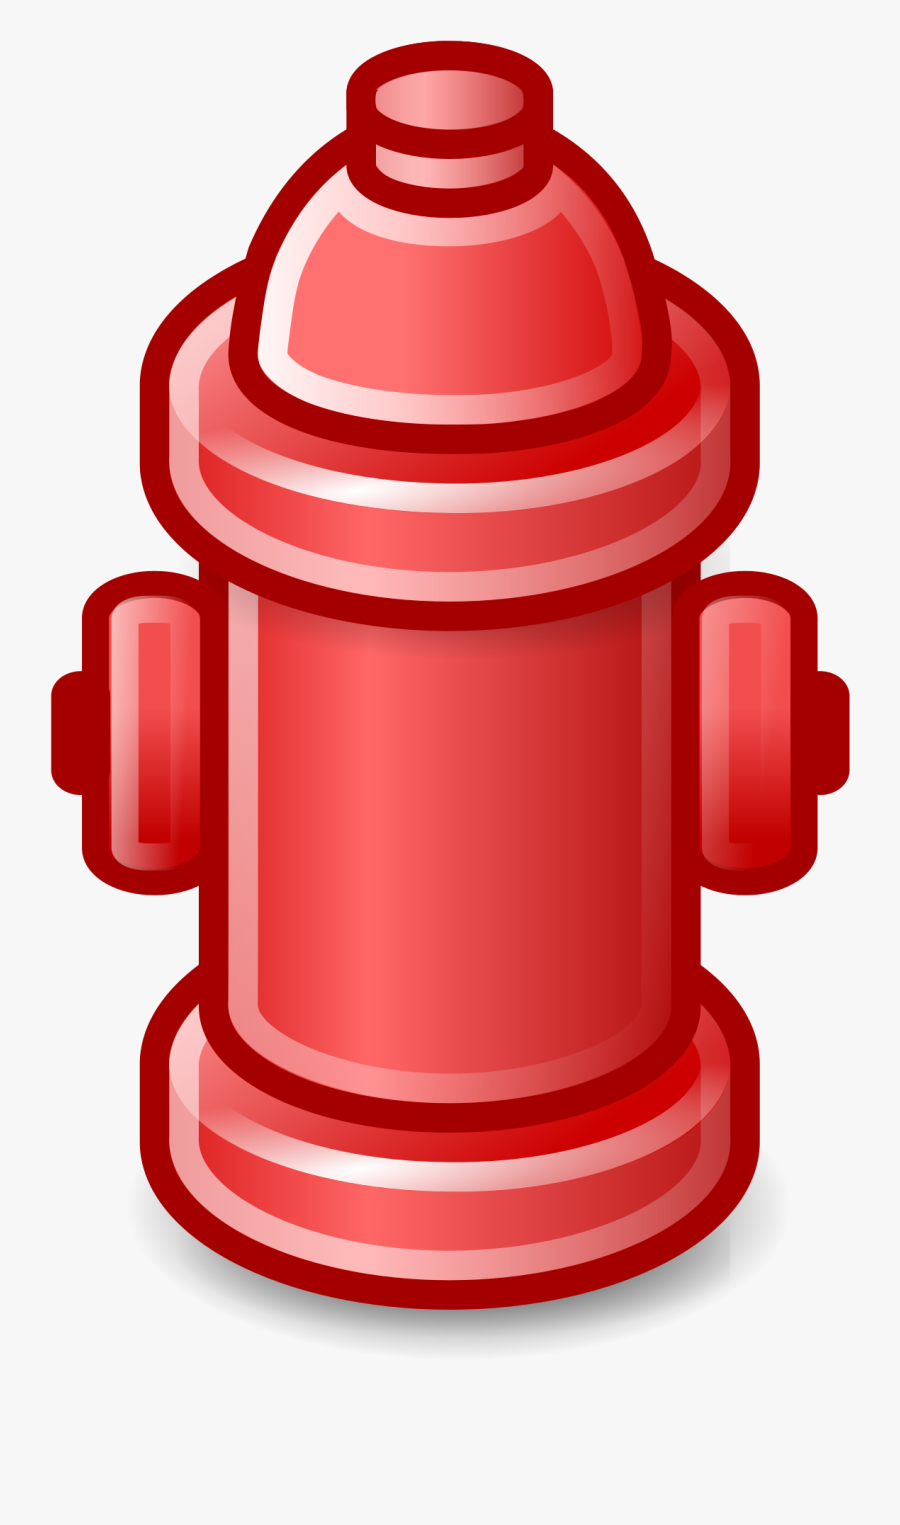 hydrant icon transparent fire hydrant png free transparent clipart clipartkey hydrant icon transparent fire hydrant